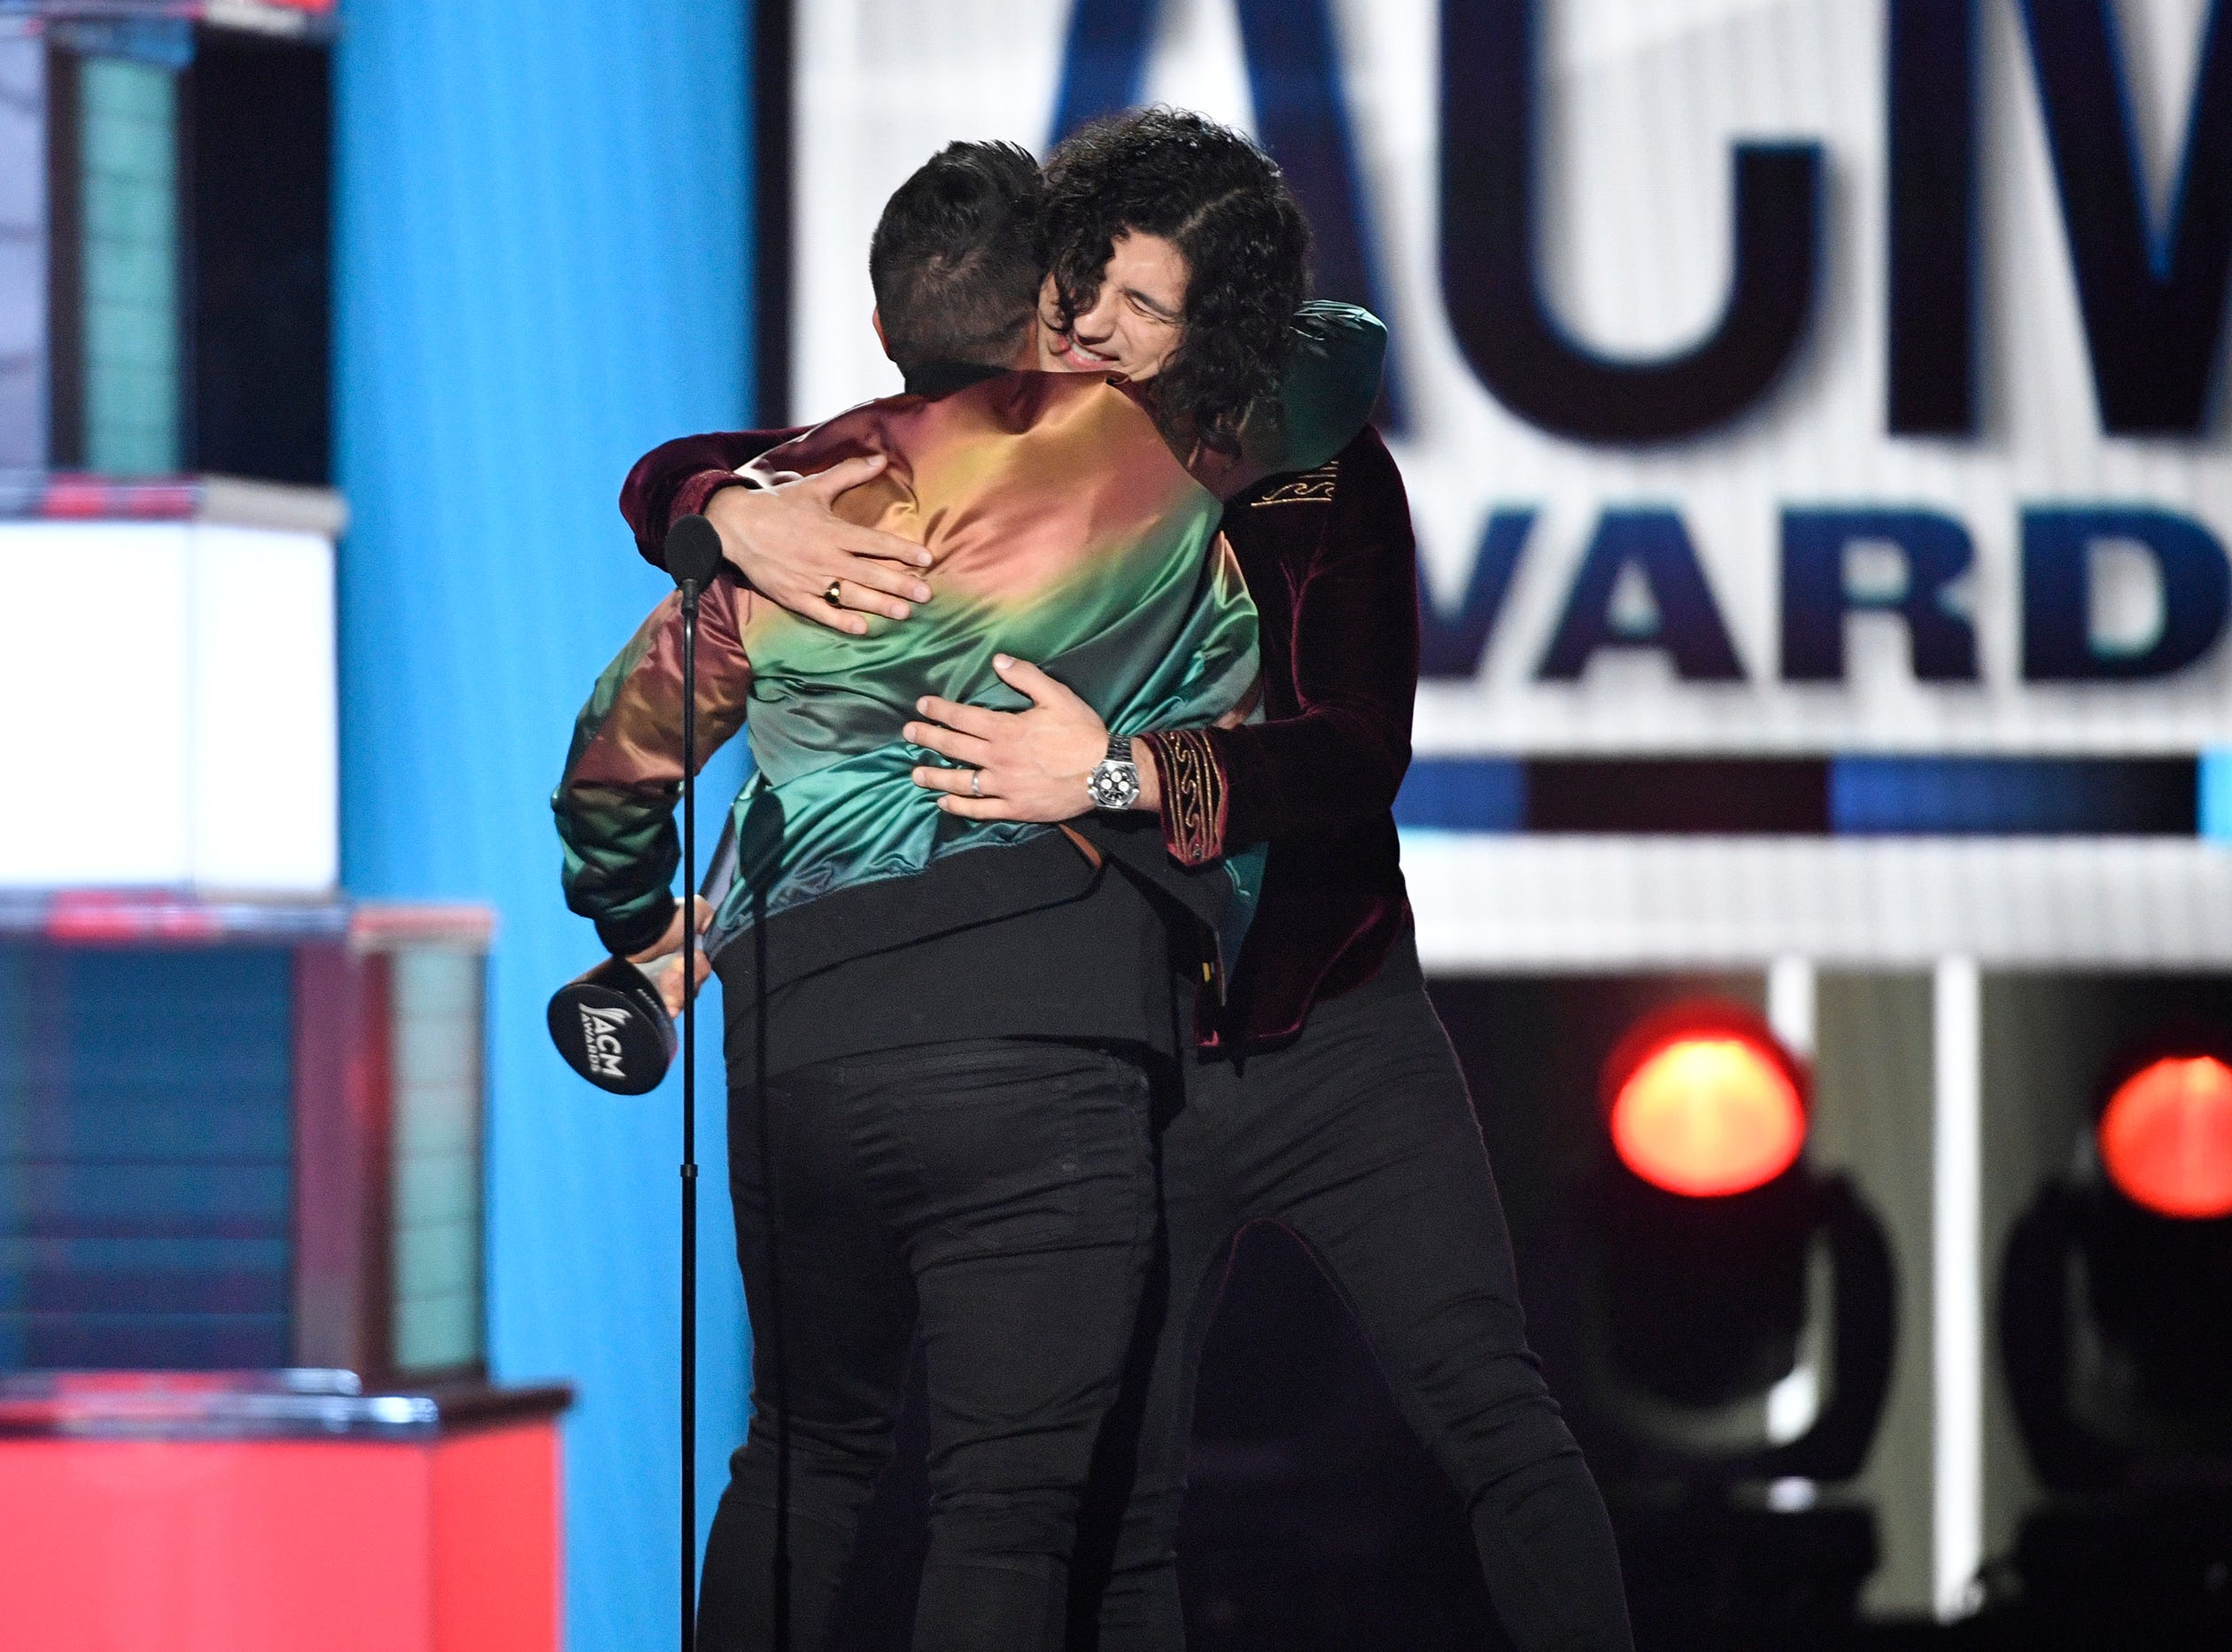 Shay Mooney, left, and Dan Smyers of Dan + Shay, embrace after accepting the Duo of the Year award during the 54TH Academy of Country Music Awards Sunday, April 7, 2019, in Las Vegas, Nev.